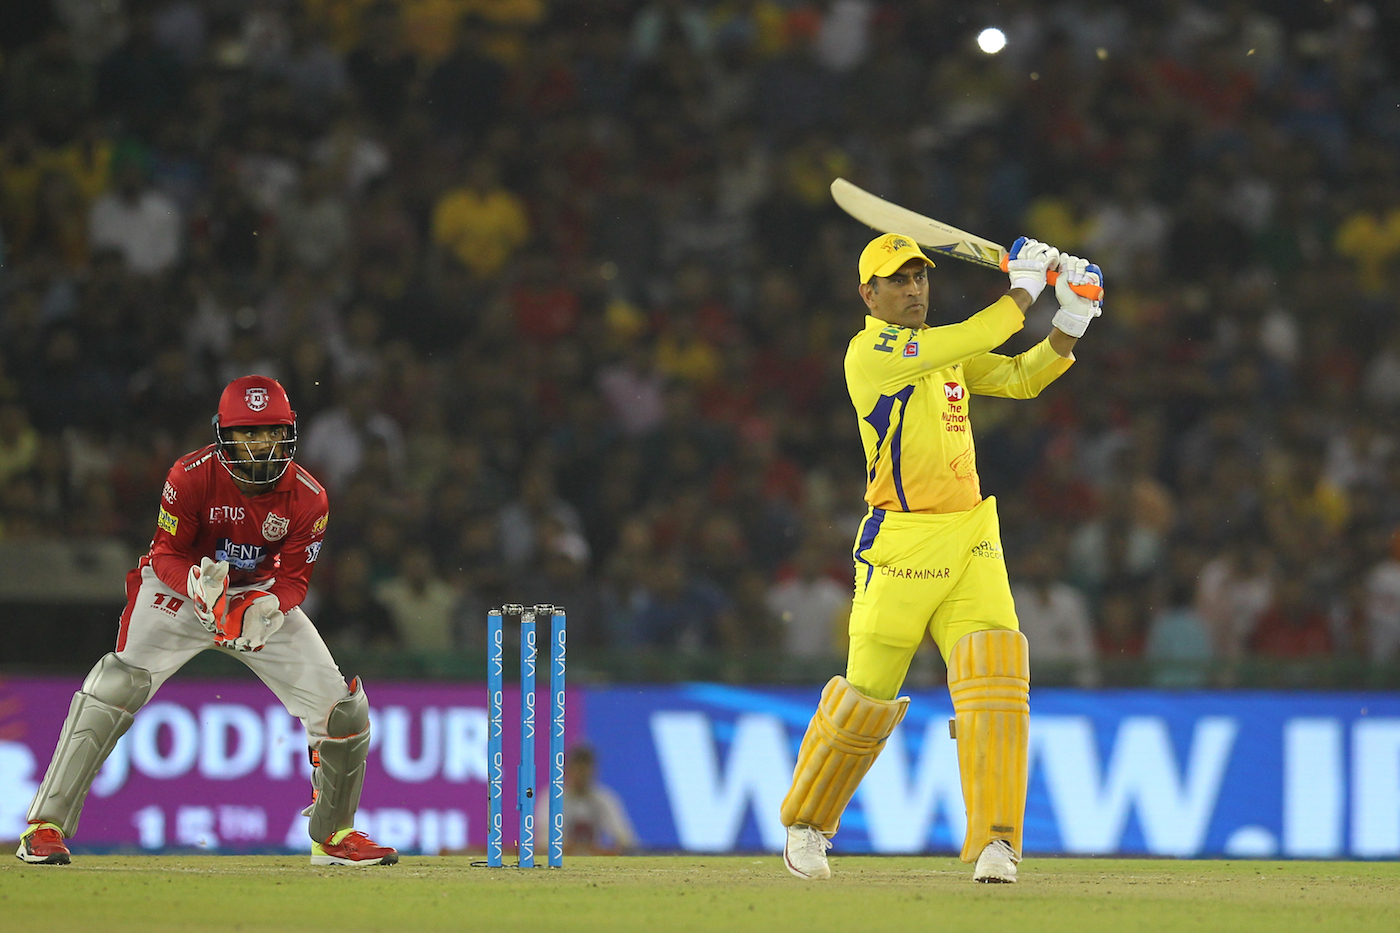 IPL 2018: KXIP And CSK Seem To Be Looking Very Strong - Sir Viv Richards